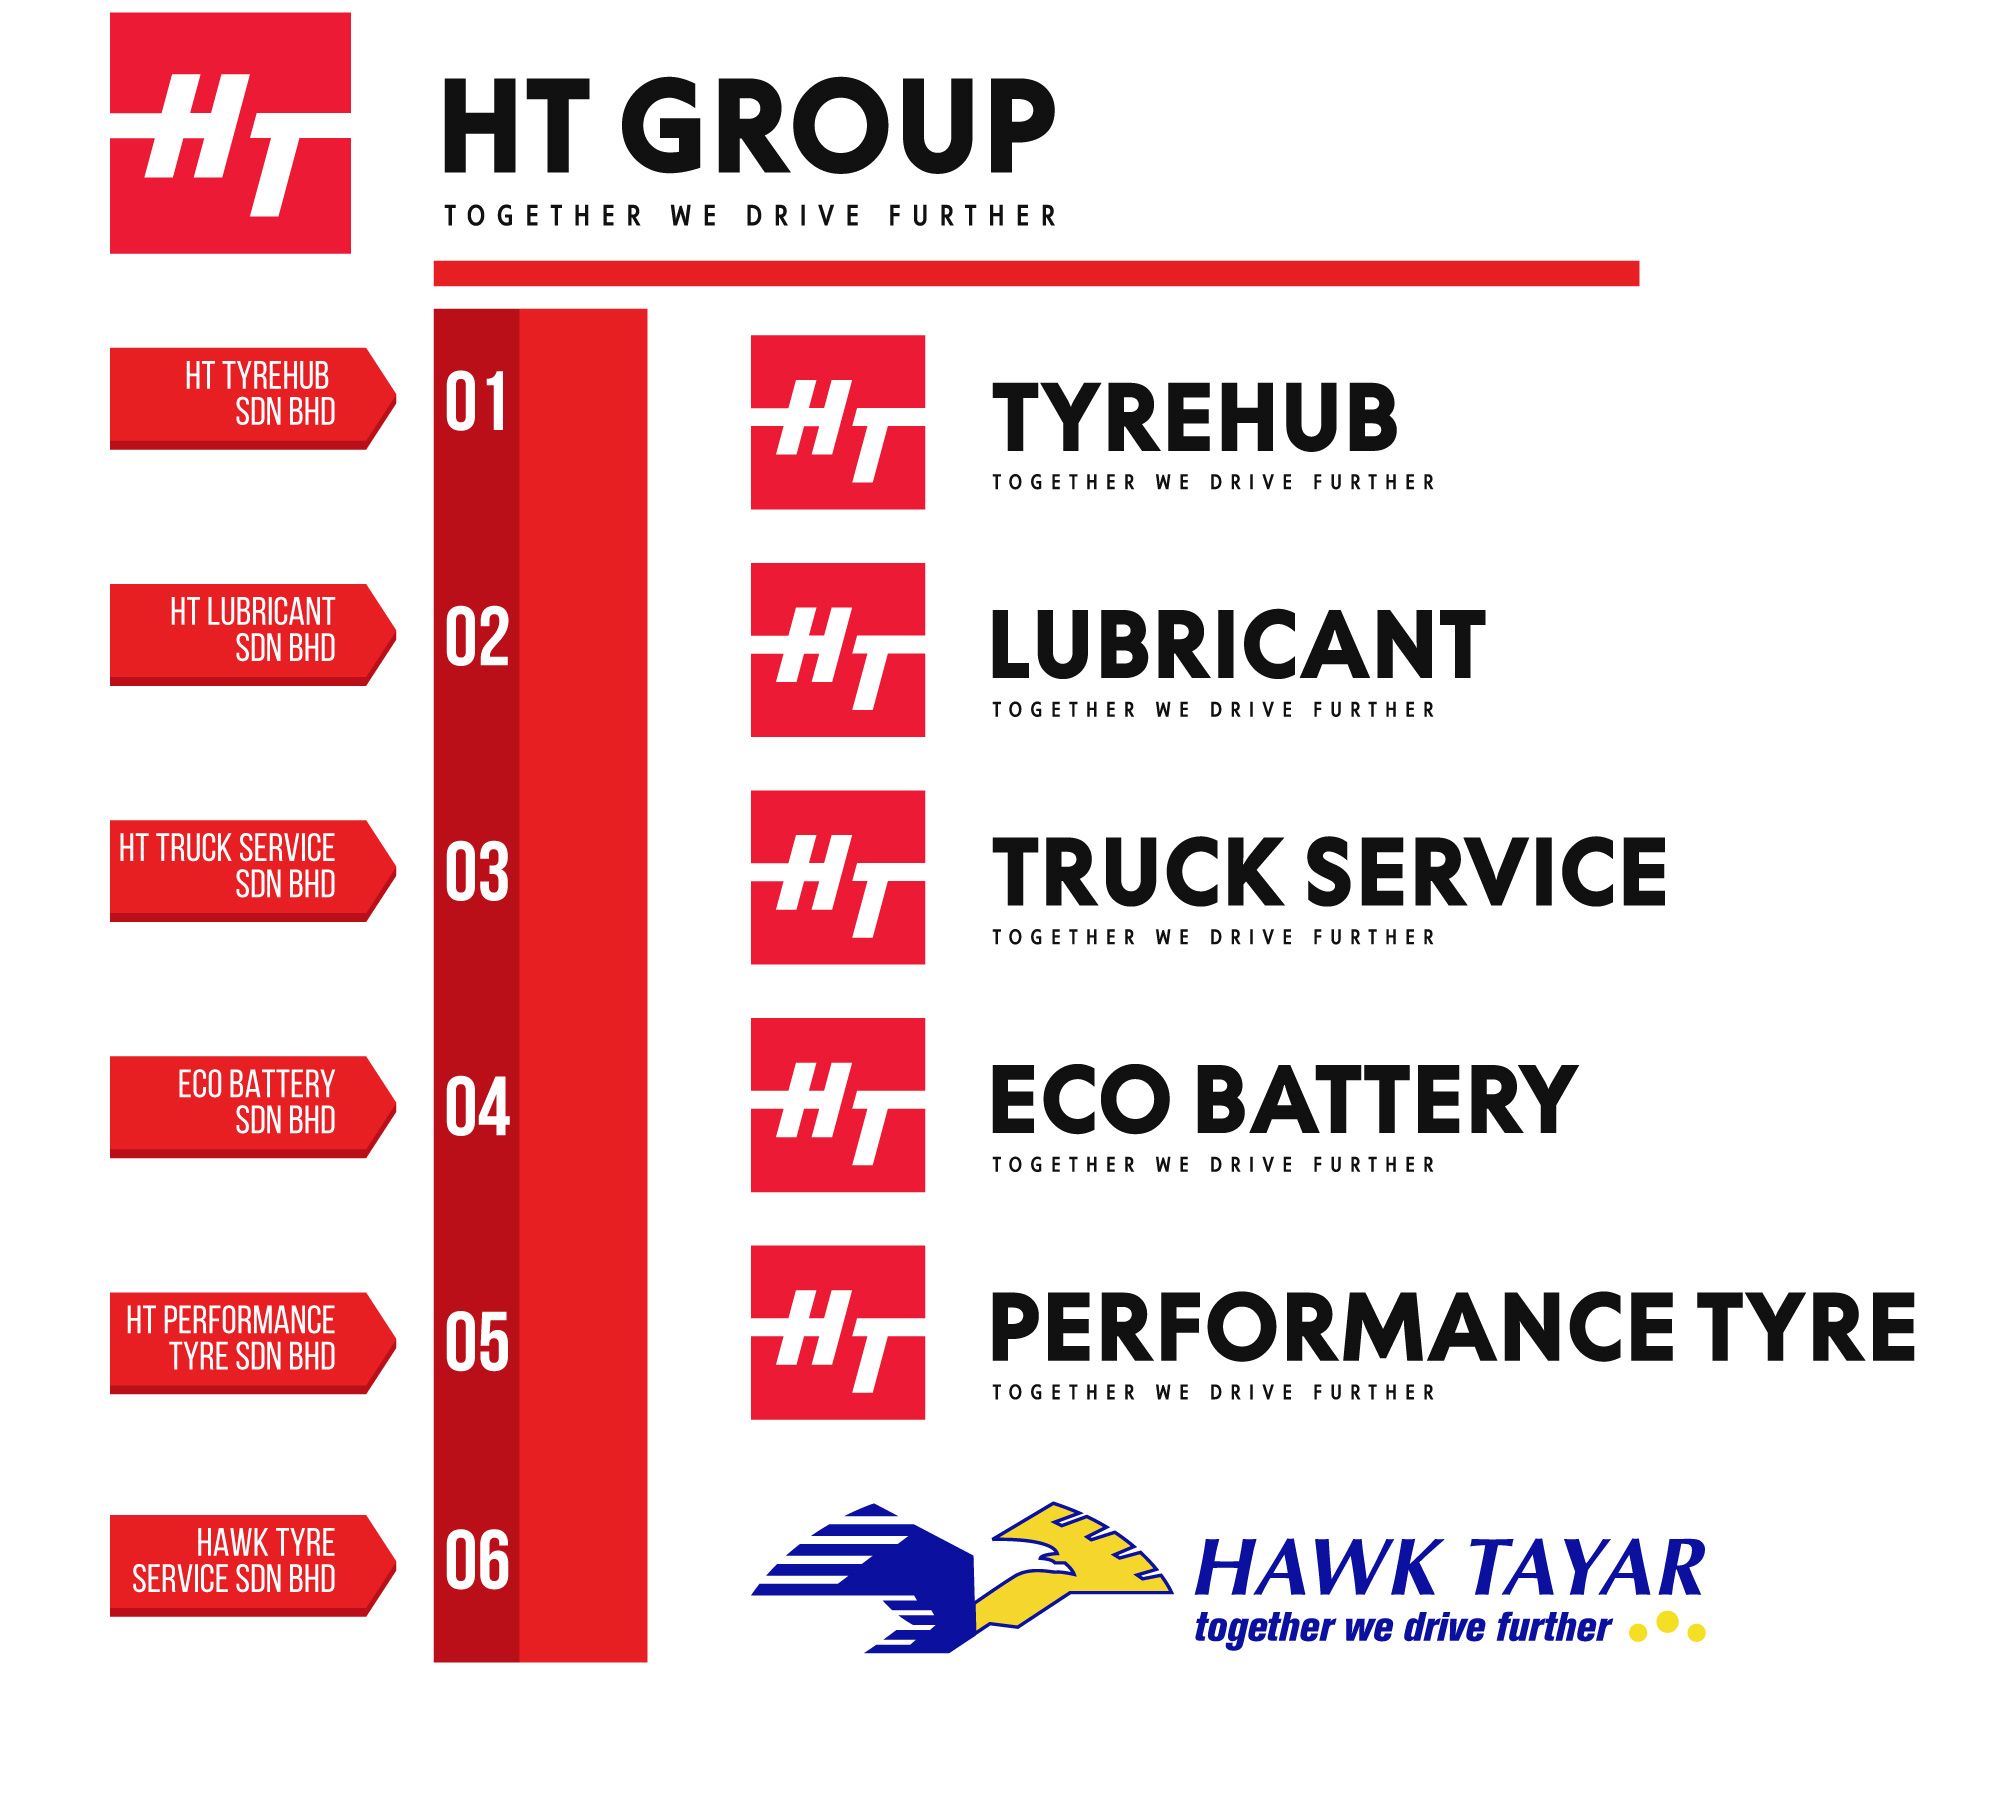 HT Group Corporate Structure